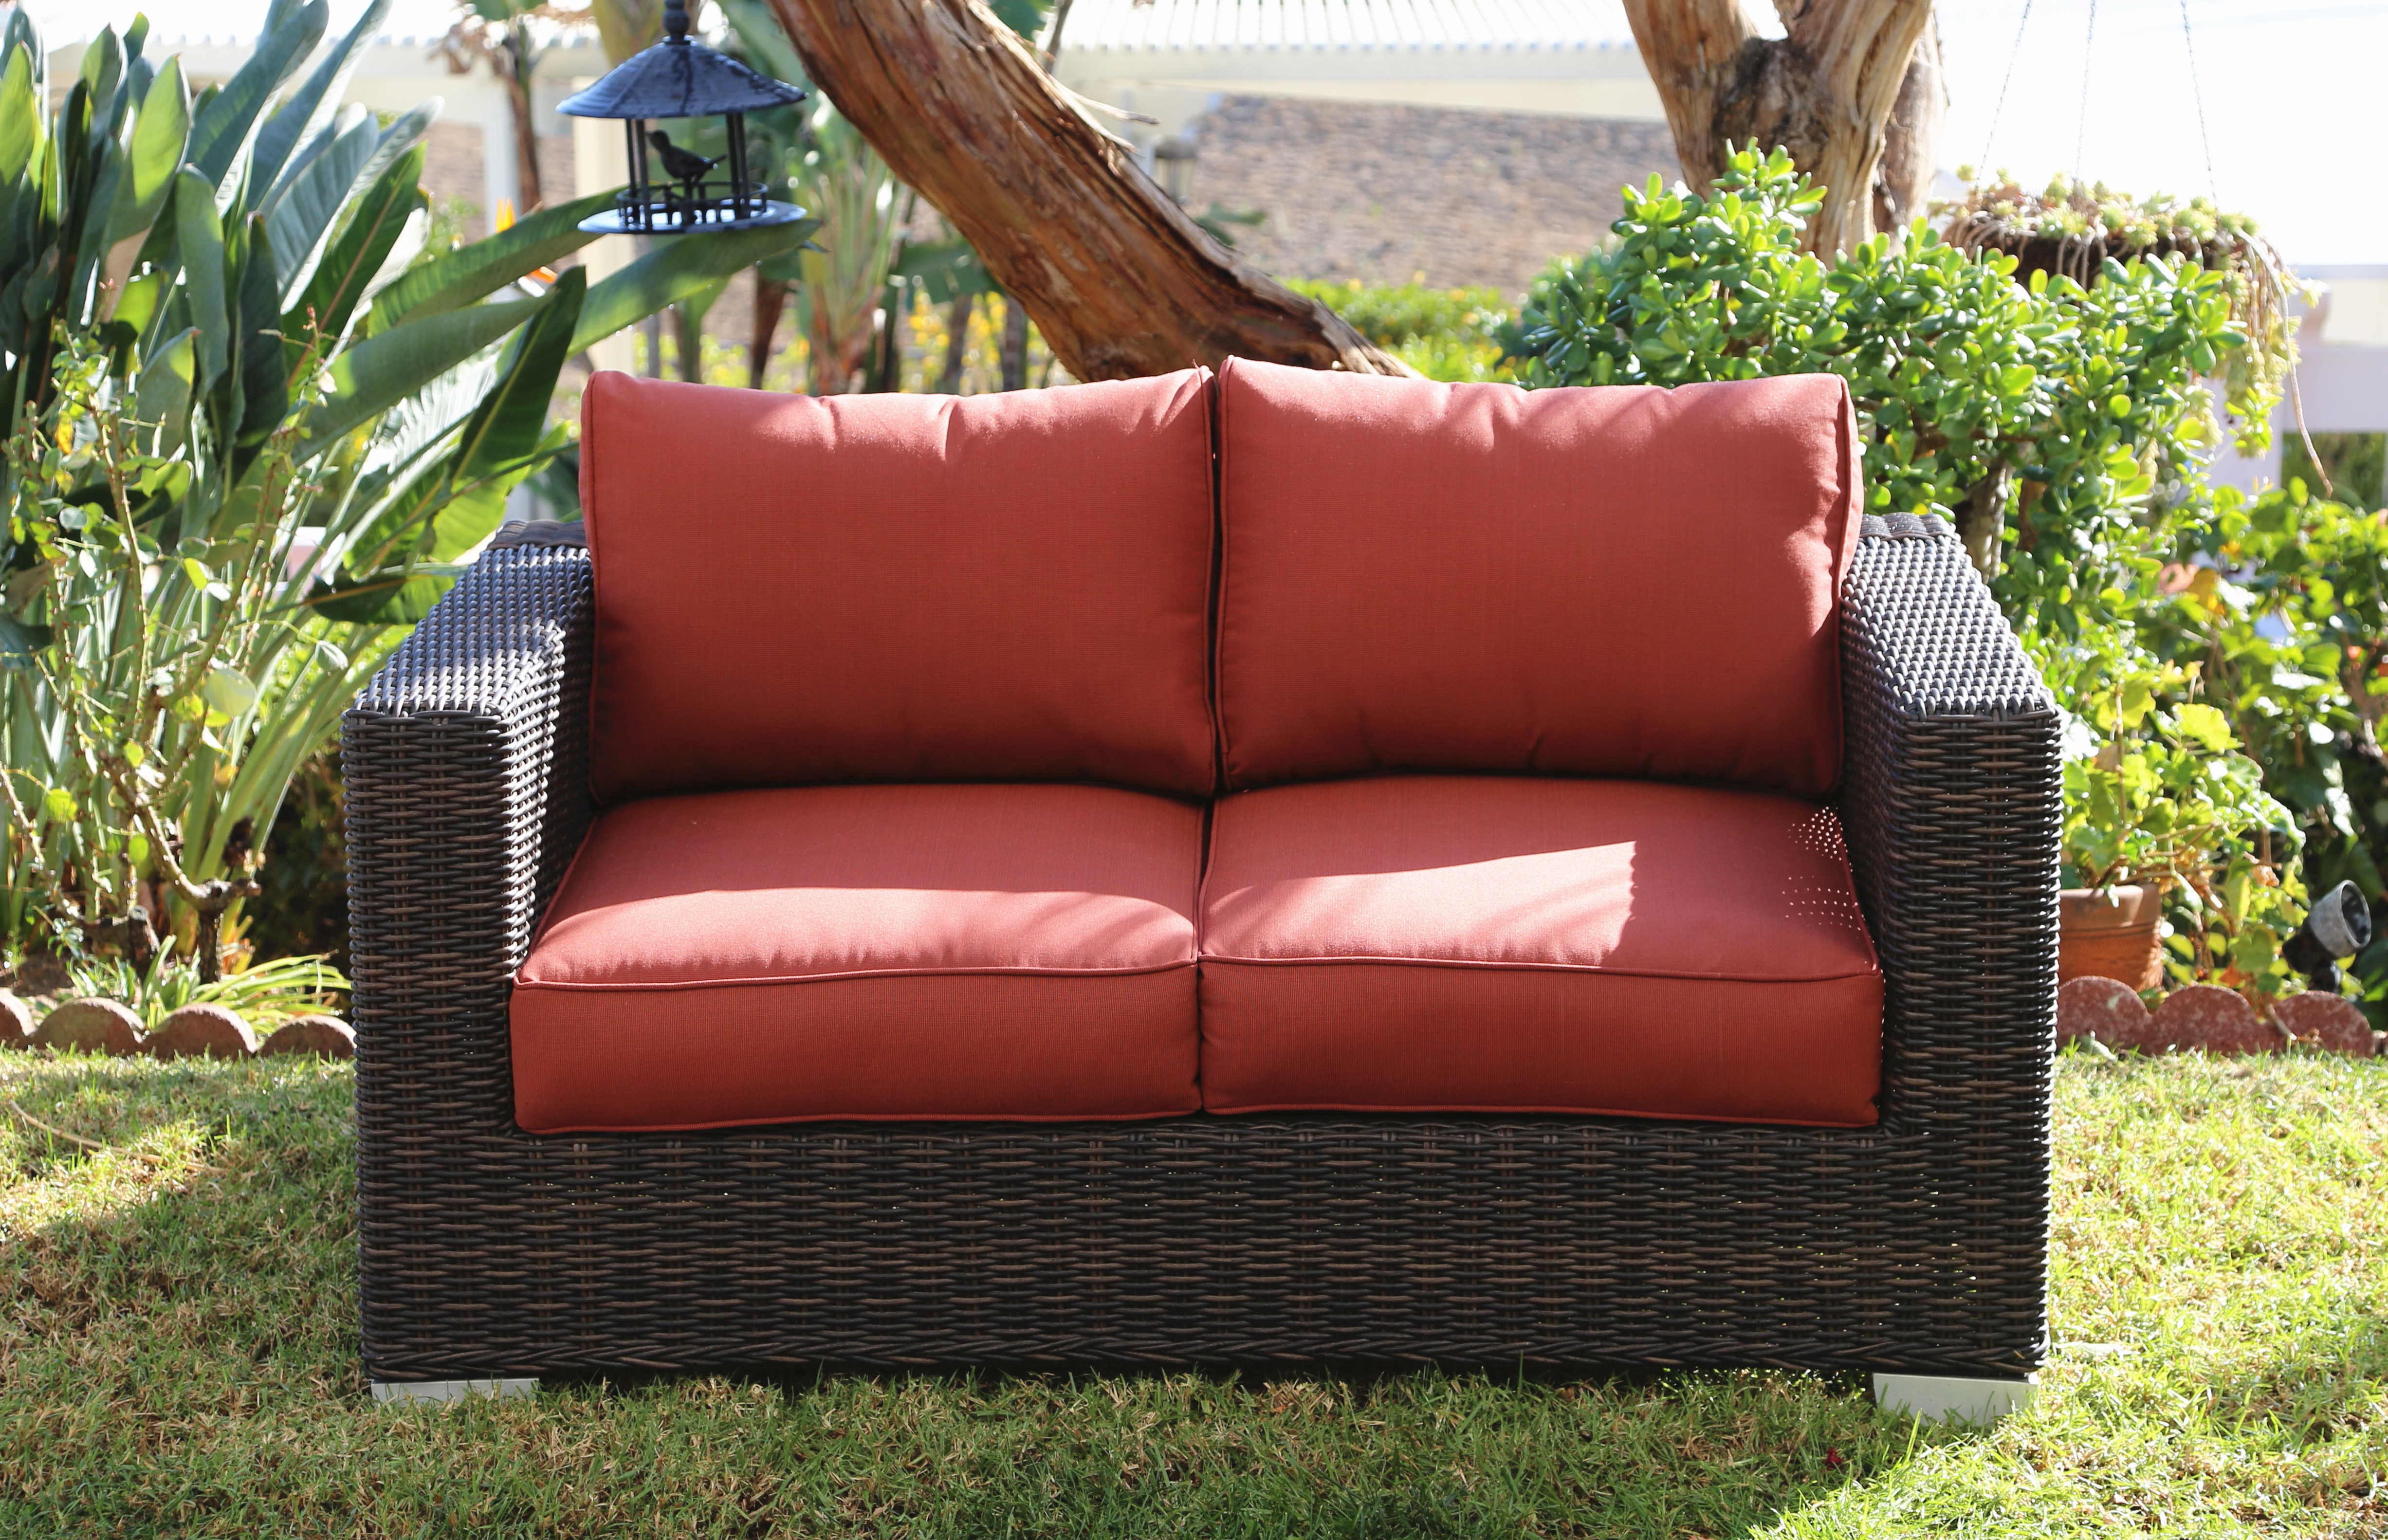 Huddleson Loveseats With Cushion Pertaining To Best And Newest Fults Loveseat With Cushion (Gallery 12 of 20)